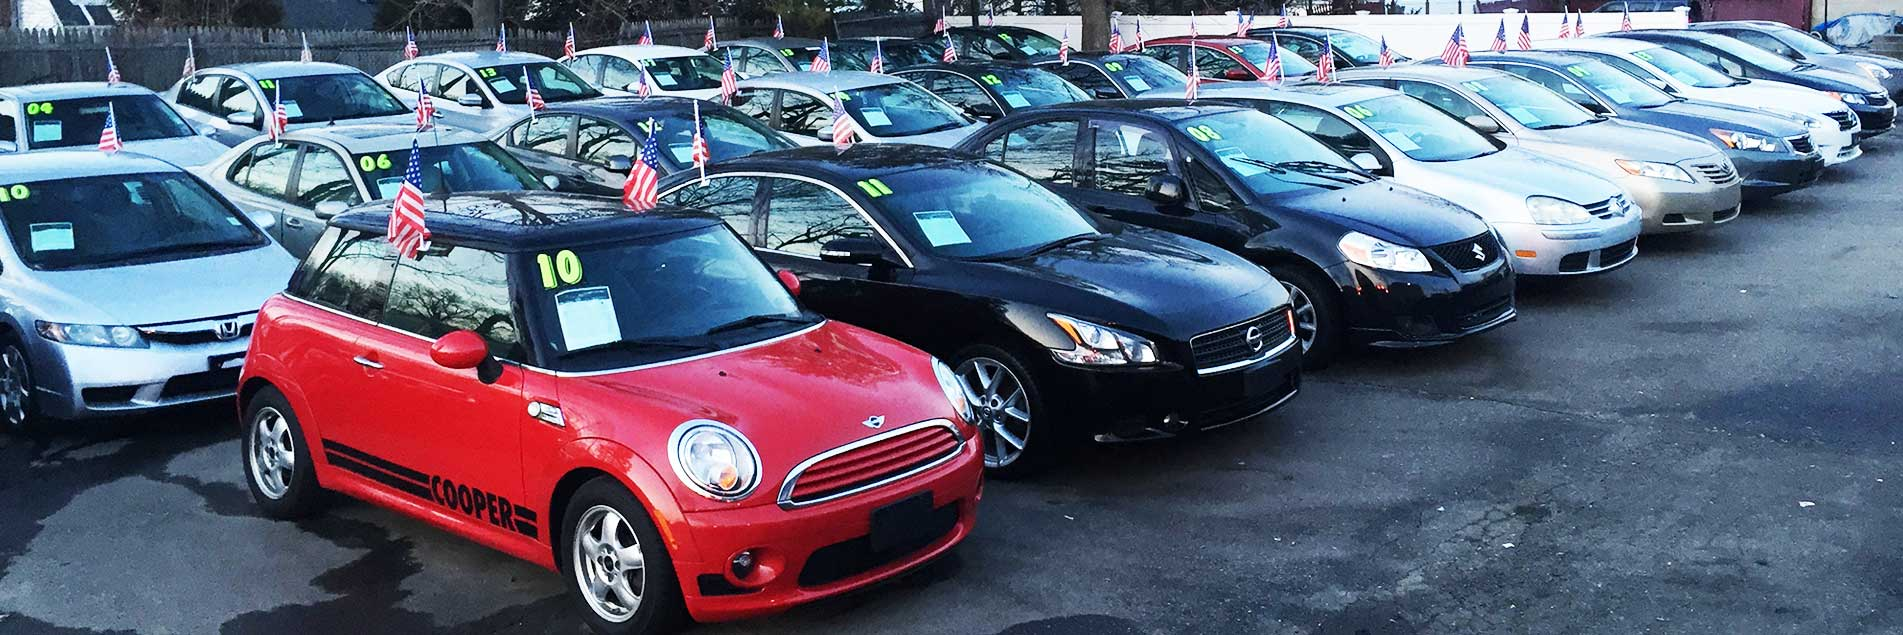 Used cars for sale in Huntington Station | Huntington Auto Mall. Huntington Station NY